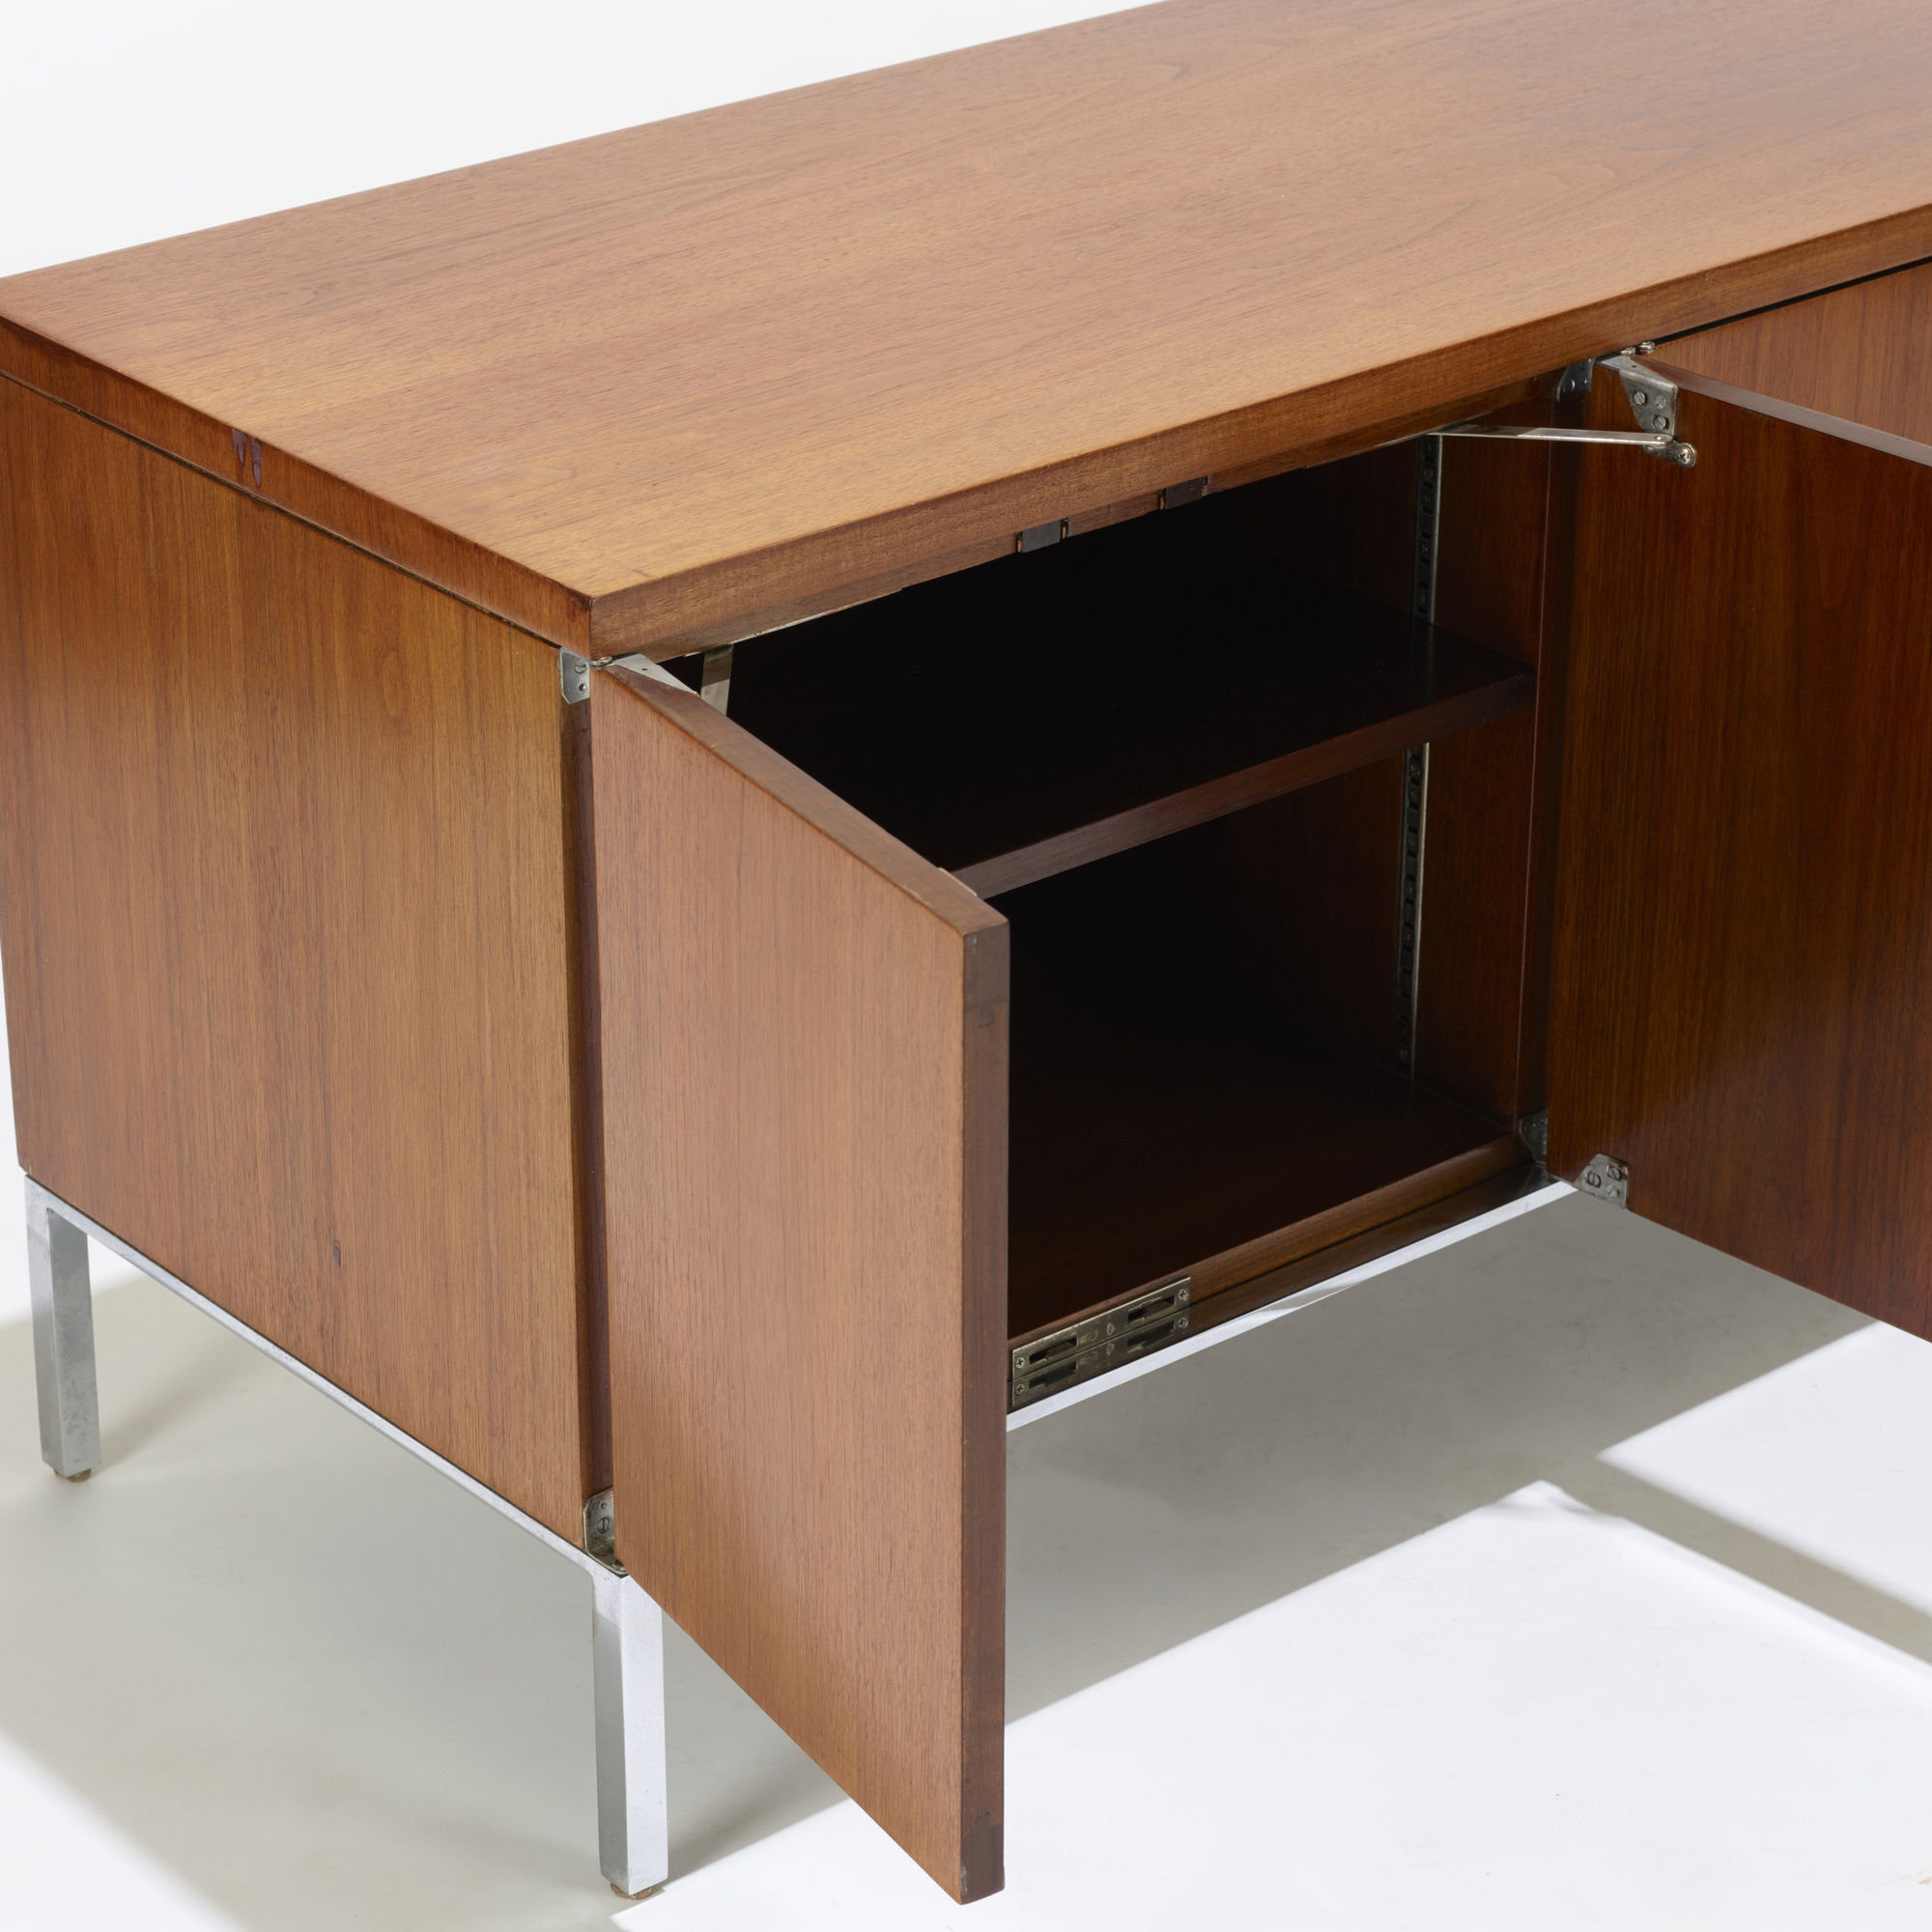 149: Florence Knoll / cabinet (3 of 4)